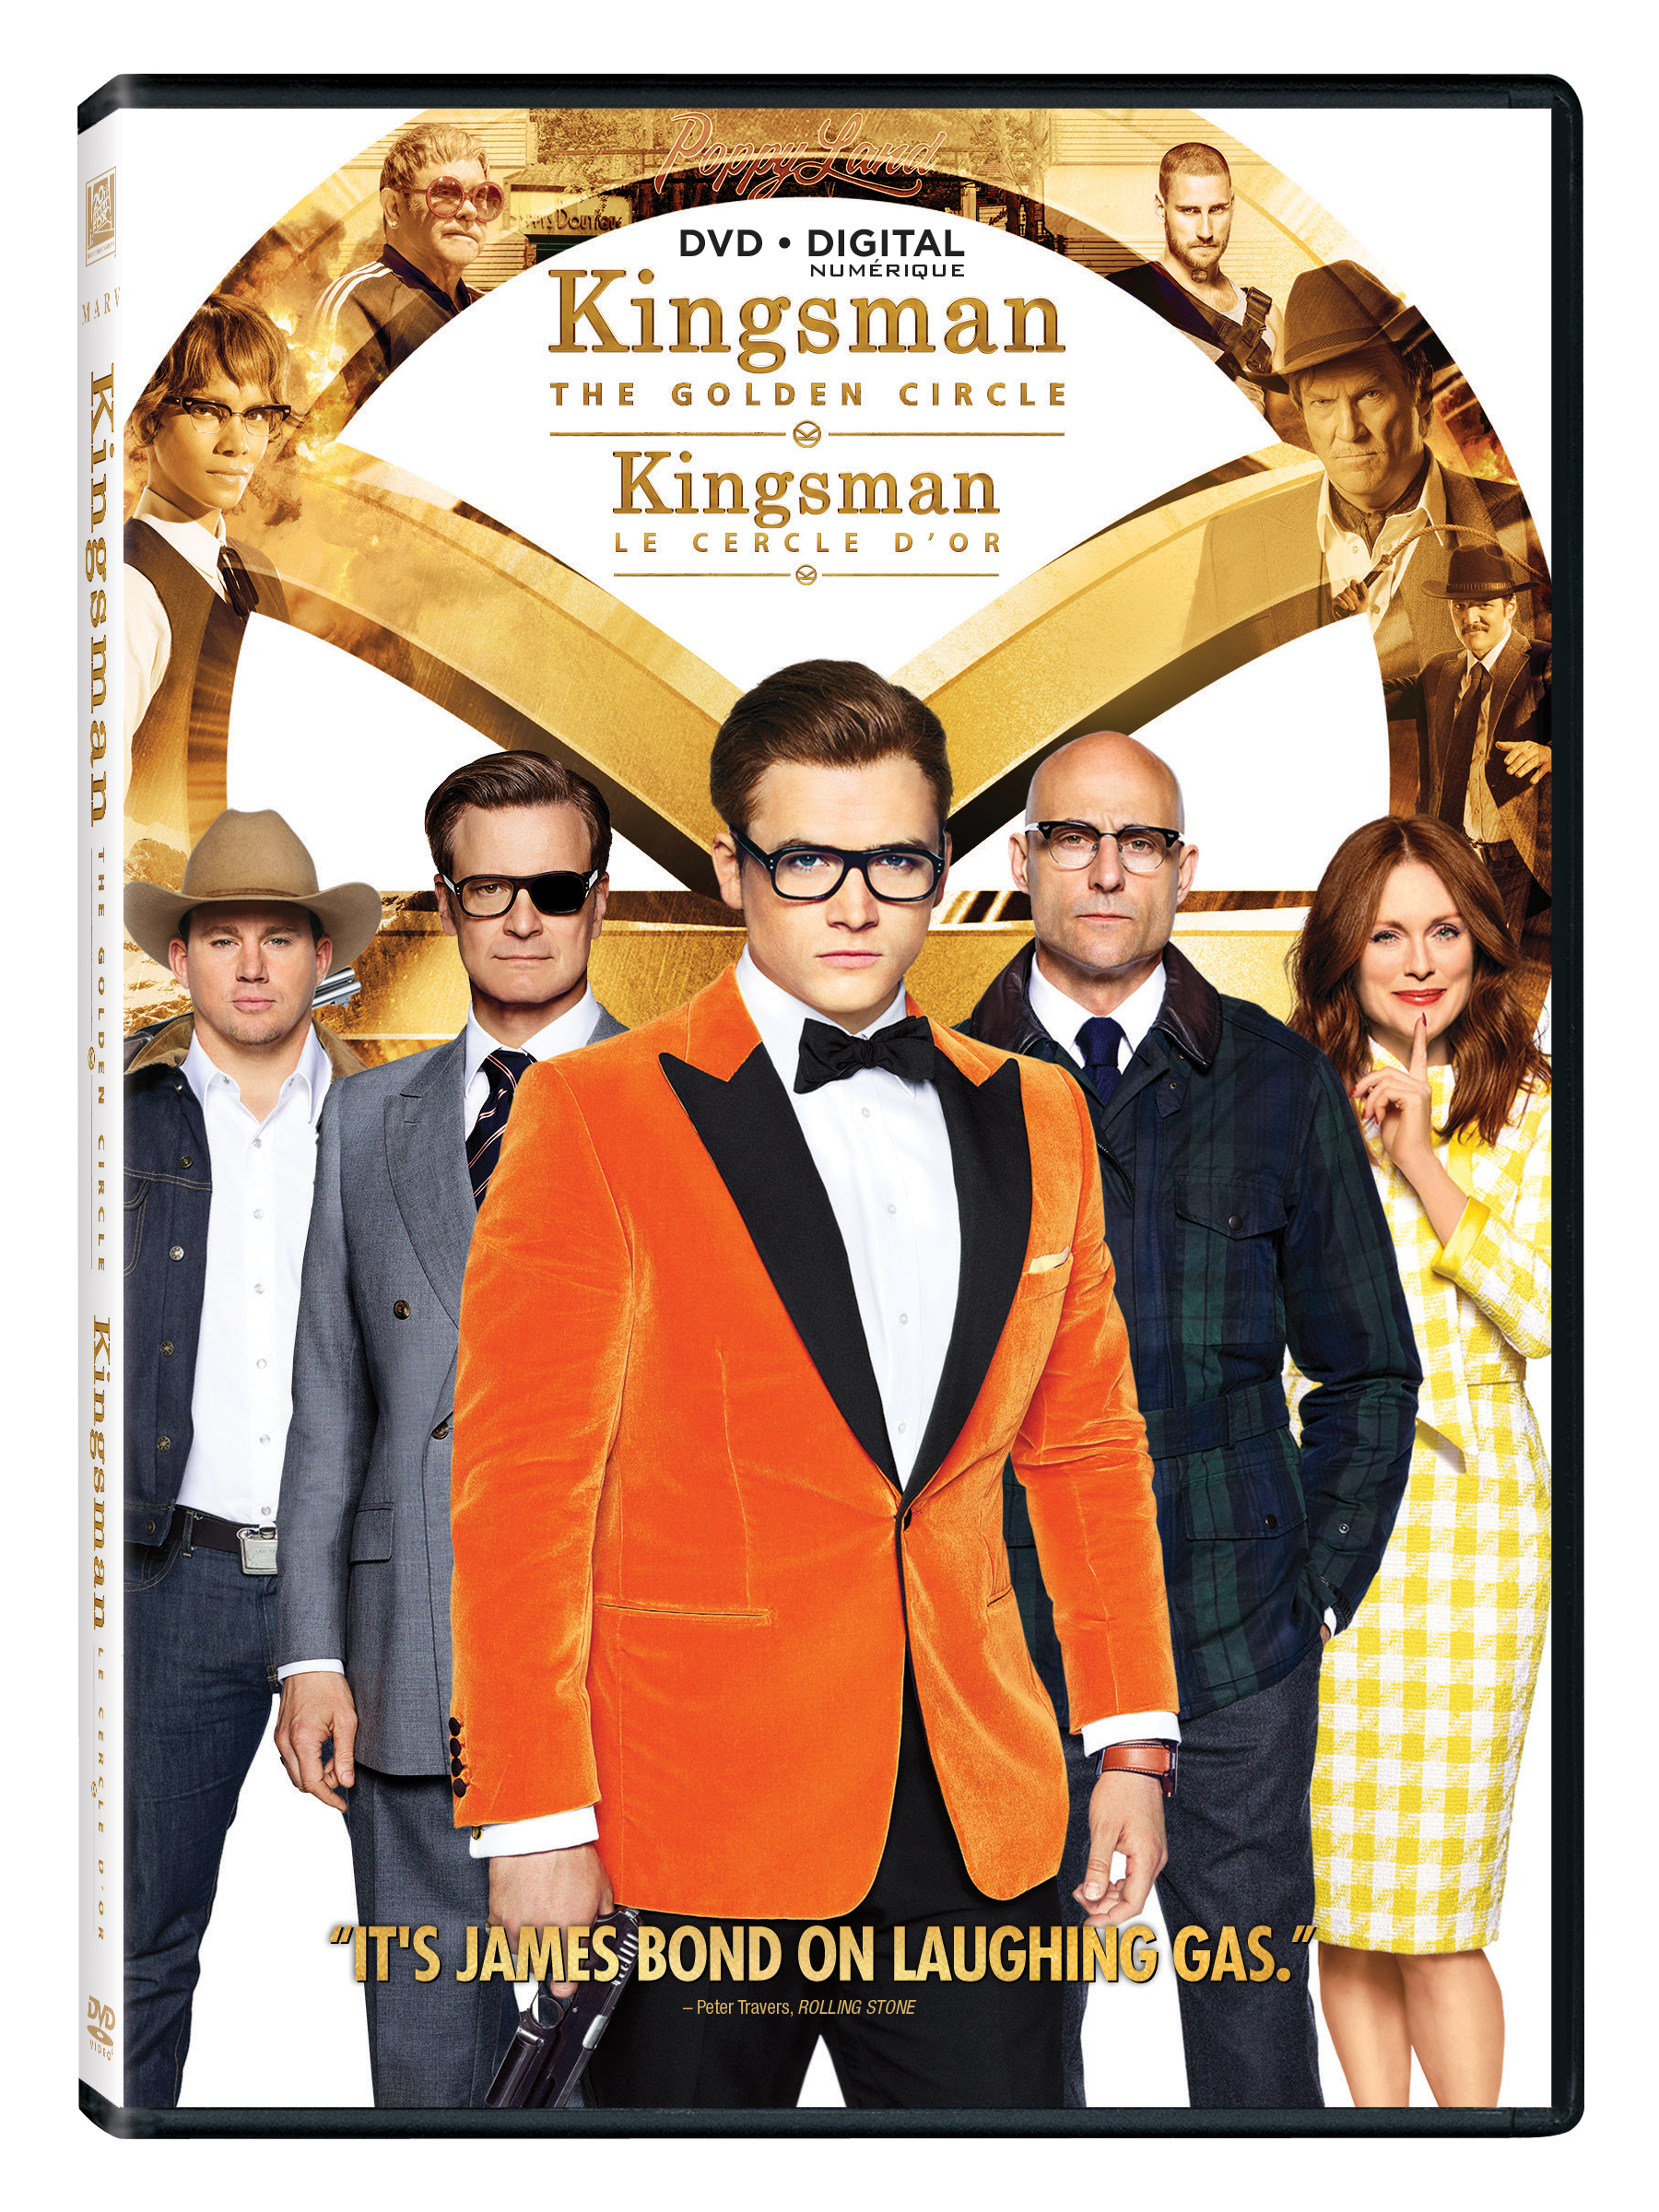 Kingsman the golden circle clipart clip transparent library KINGSMAN: THE GOLDEN CIRCLE Partner Toolkit clip transparent library